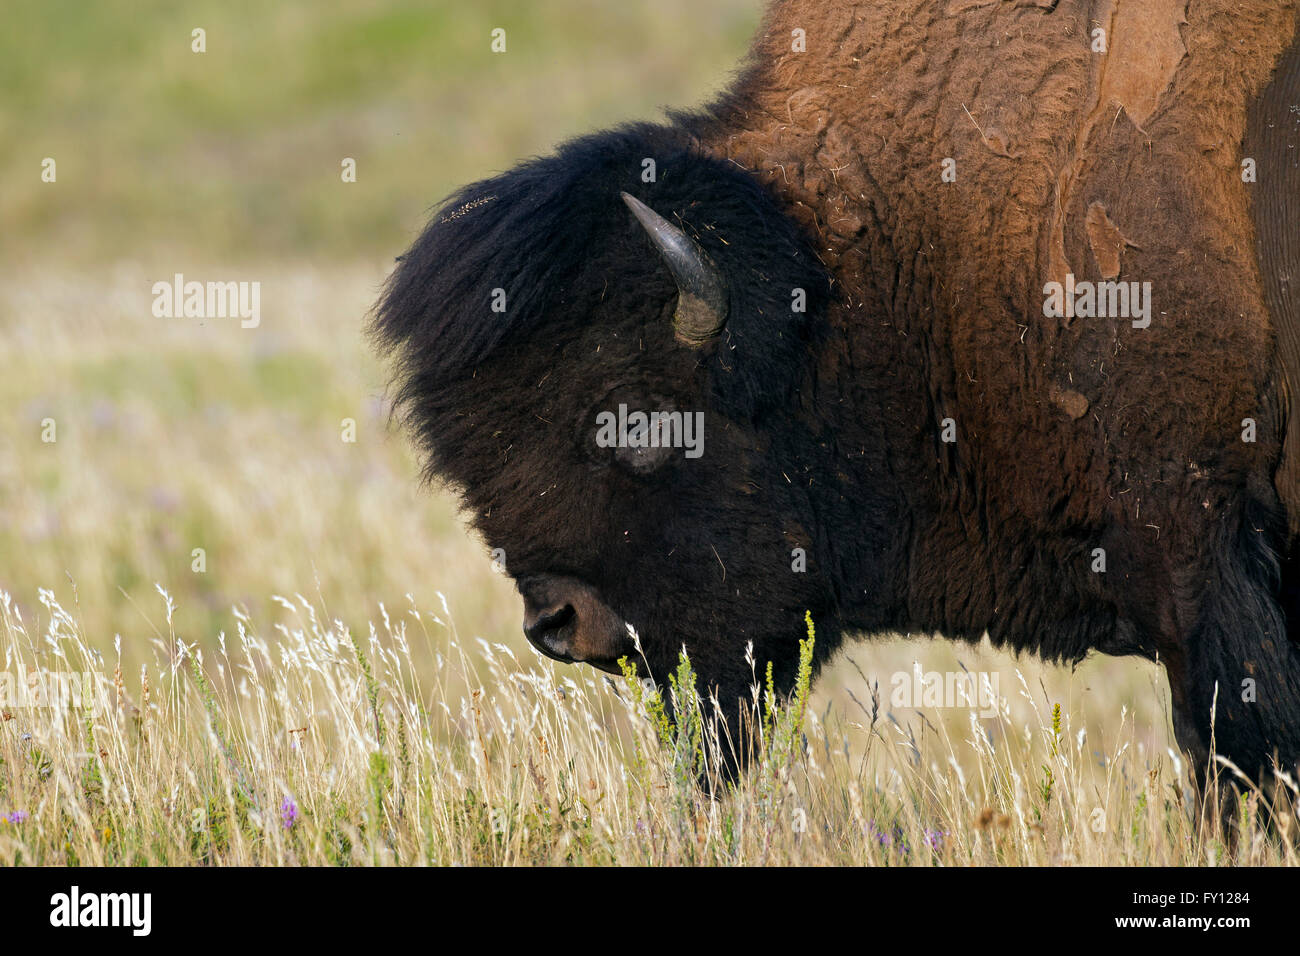 American bison / American buffalo (Bison bison) close up portrait of bull in summer coat Stock Photo